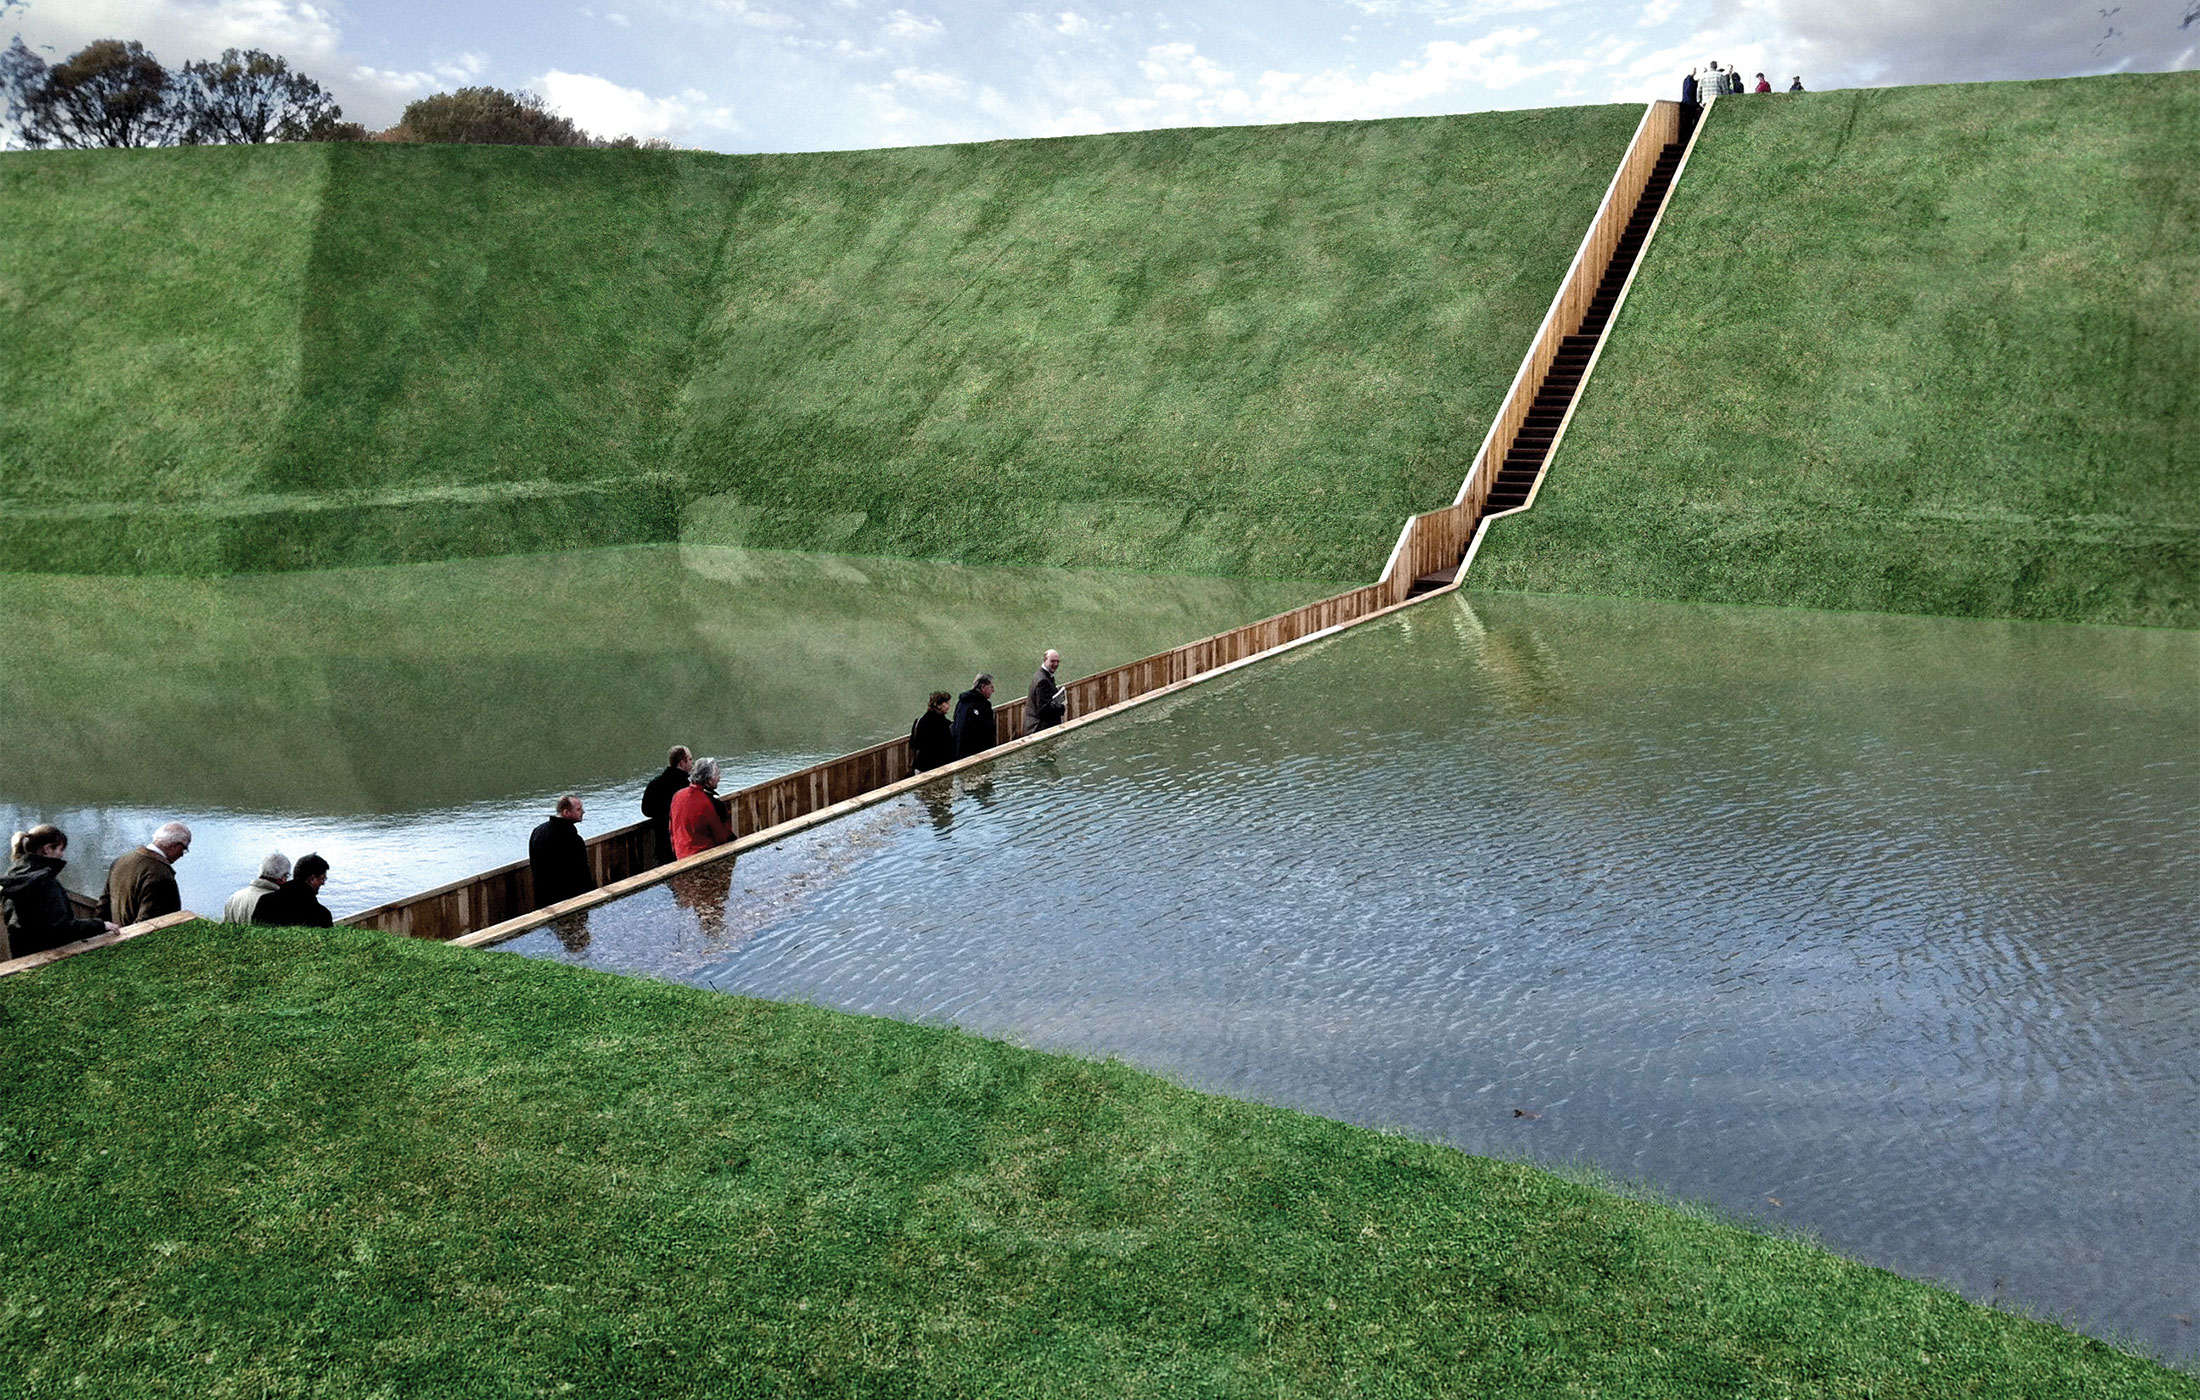 Moses bridge, the Netherlands uses accoya wood to part the water.